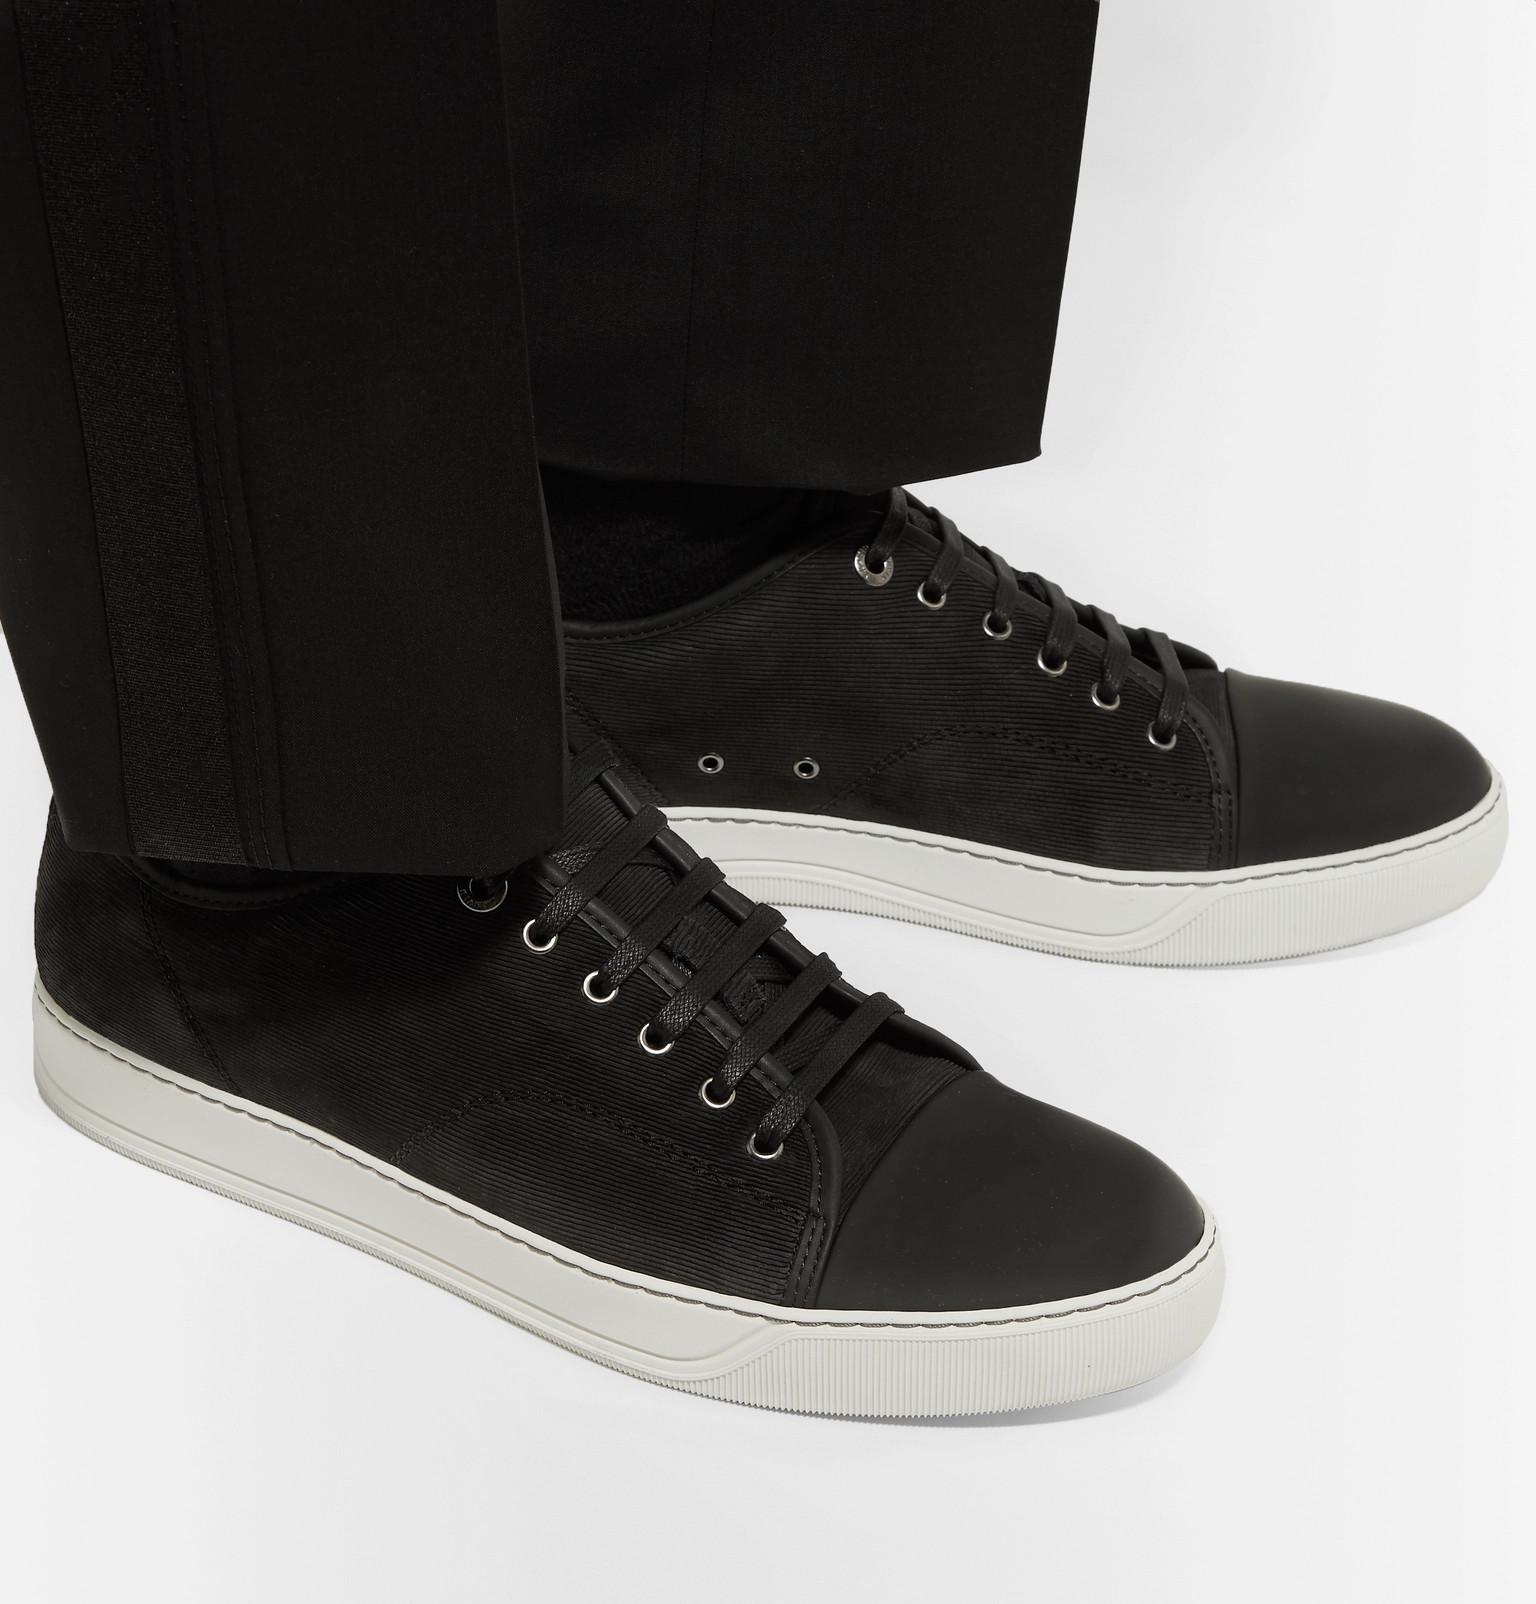 046c6bf877fe15 lanvin-black-Cap-toe-Nubuck-And-Rubberised-leather-Sneakers.jpeg